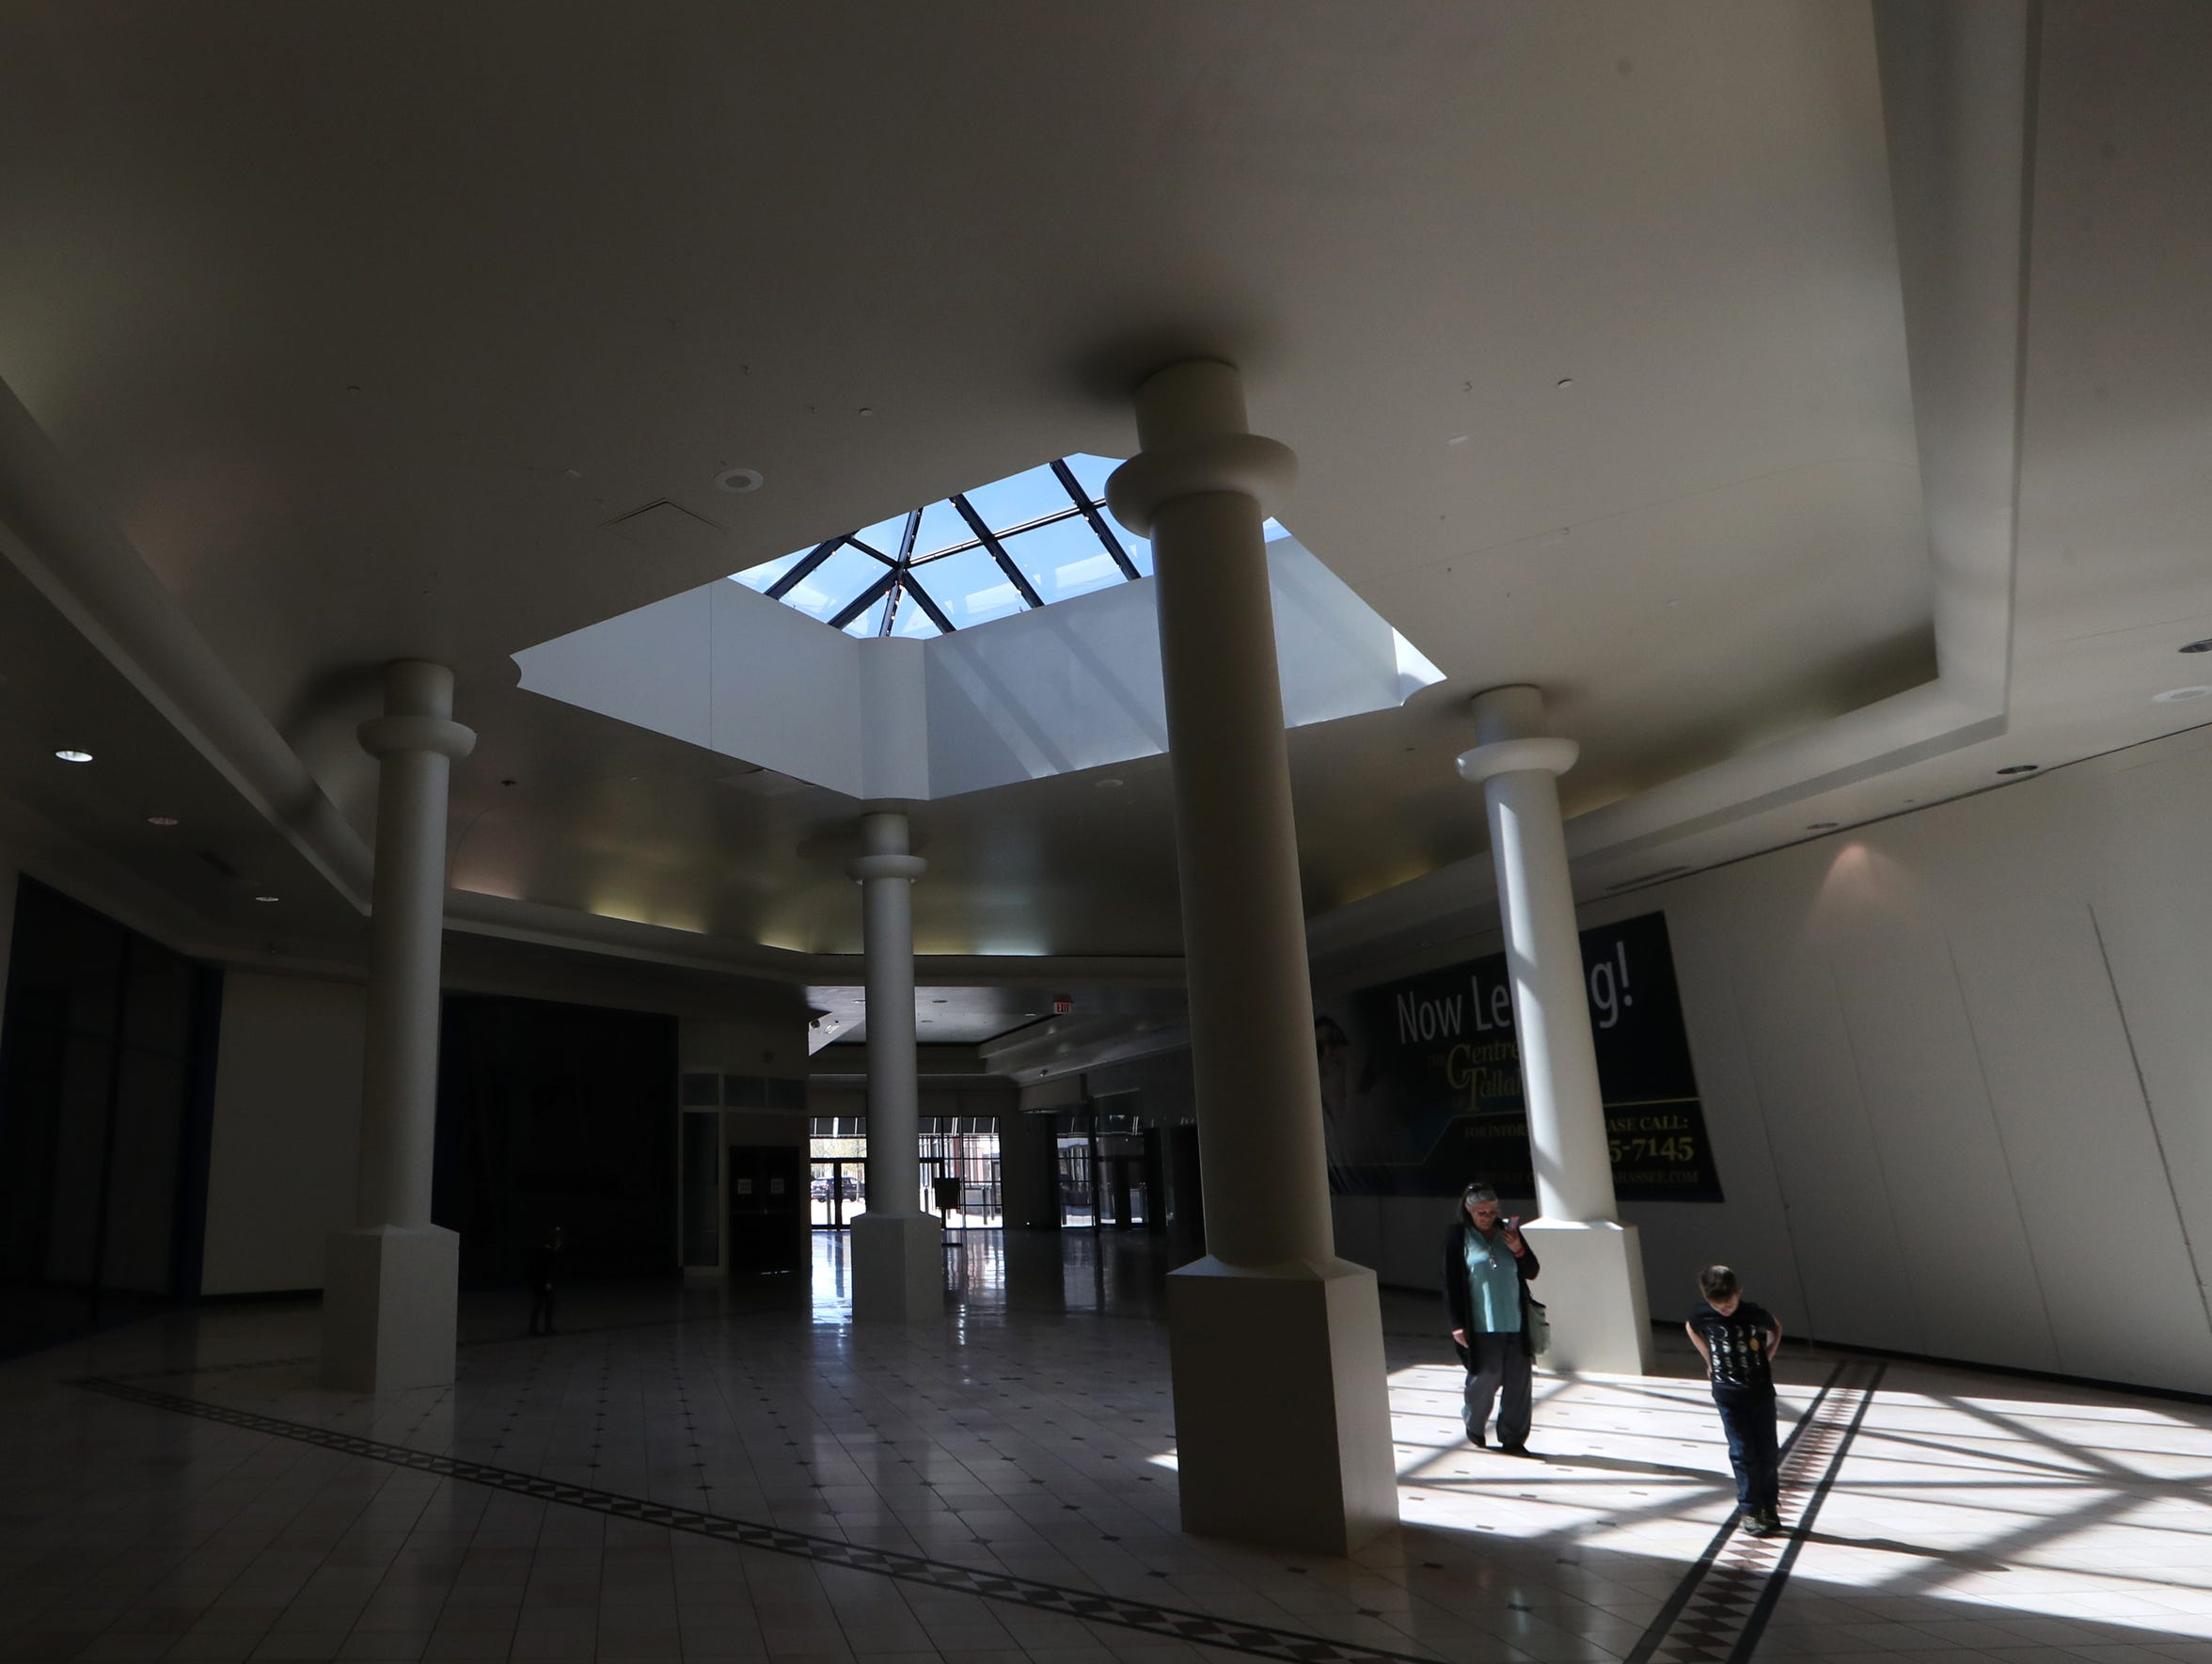 Long, empty spaces are a fixture of the Centre of Tallahassee